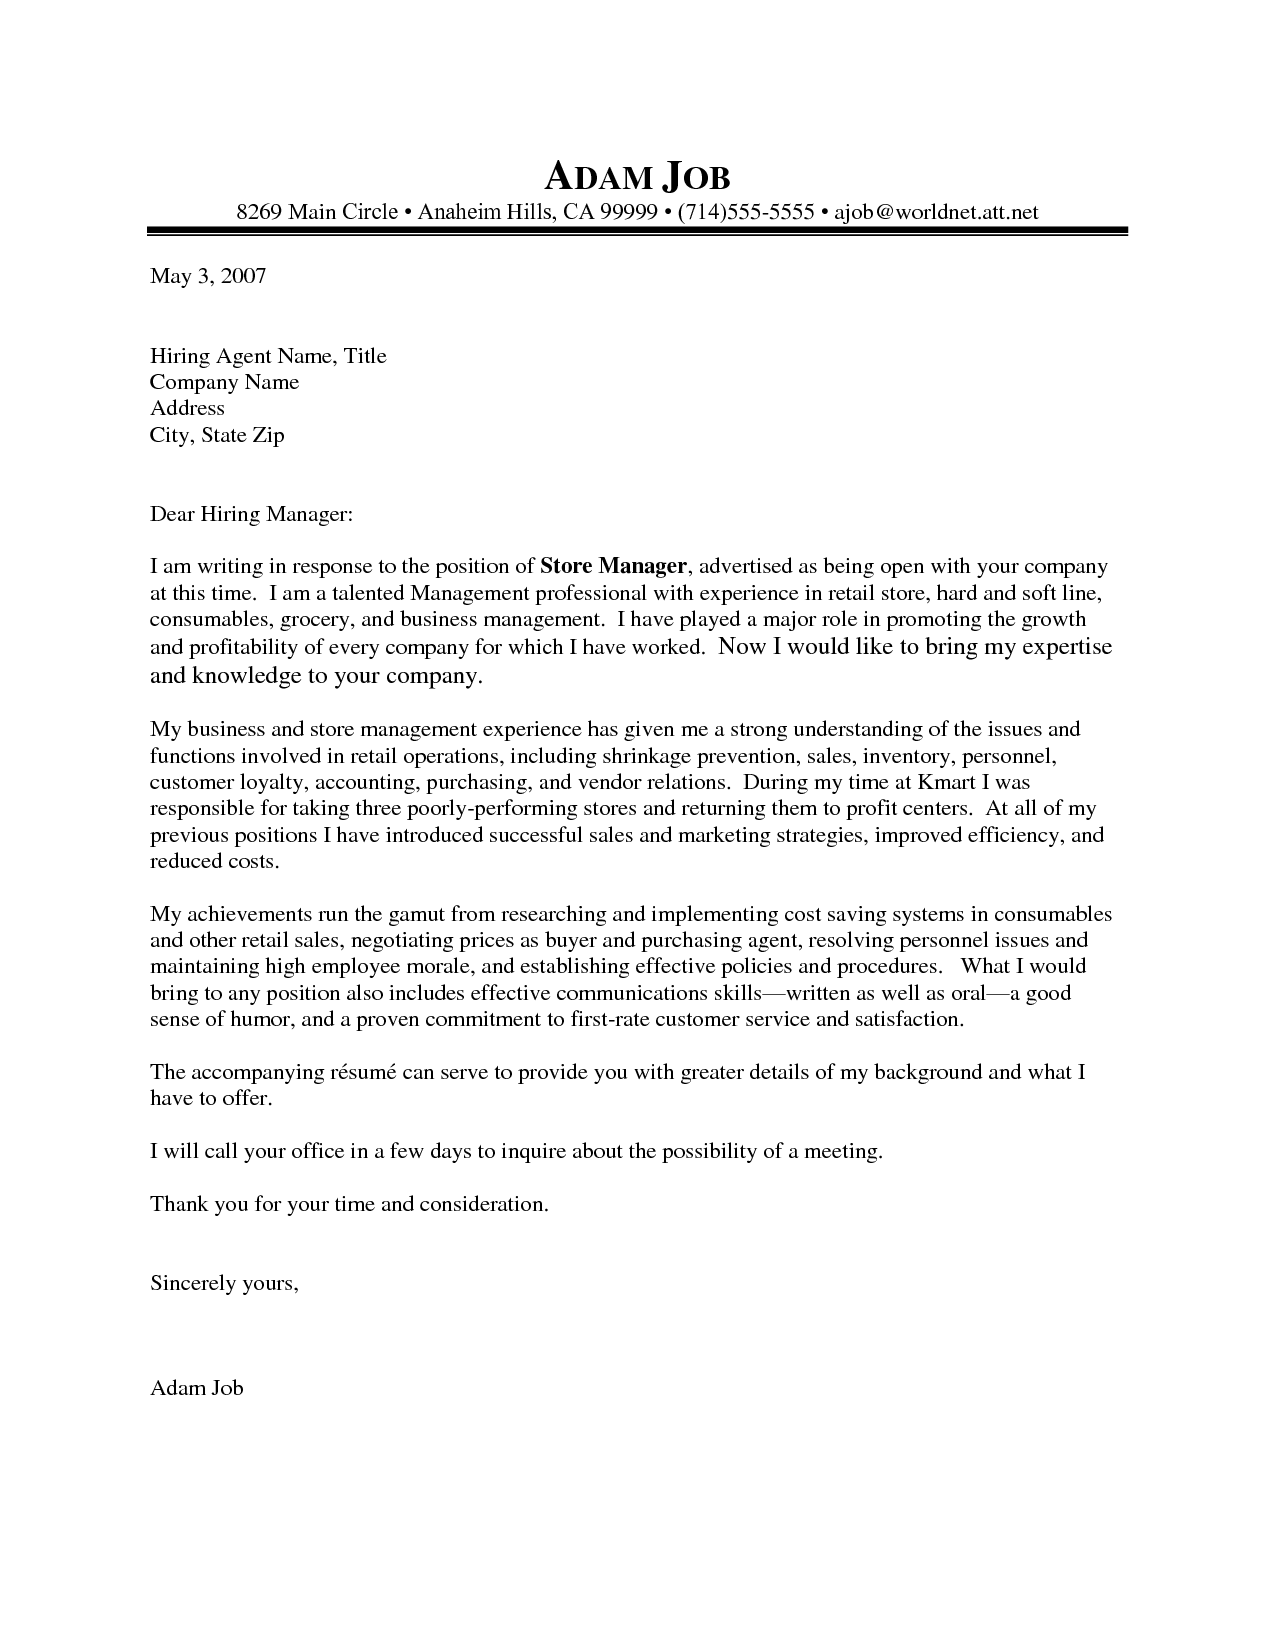 College Cover Letter Adorable Application Letter Sample For Any Position College Admissions Review